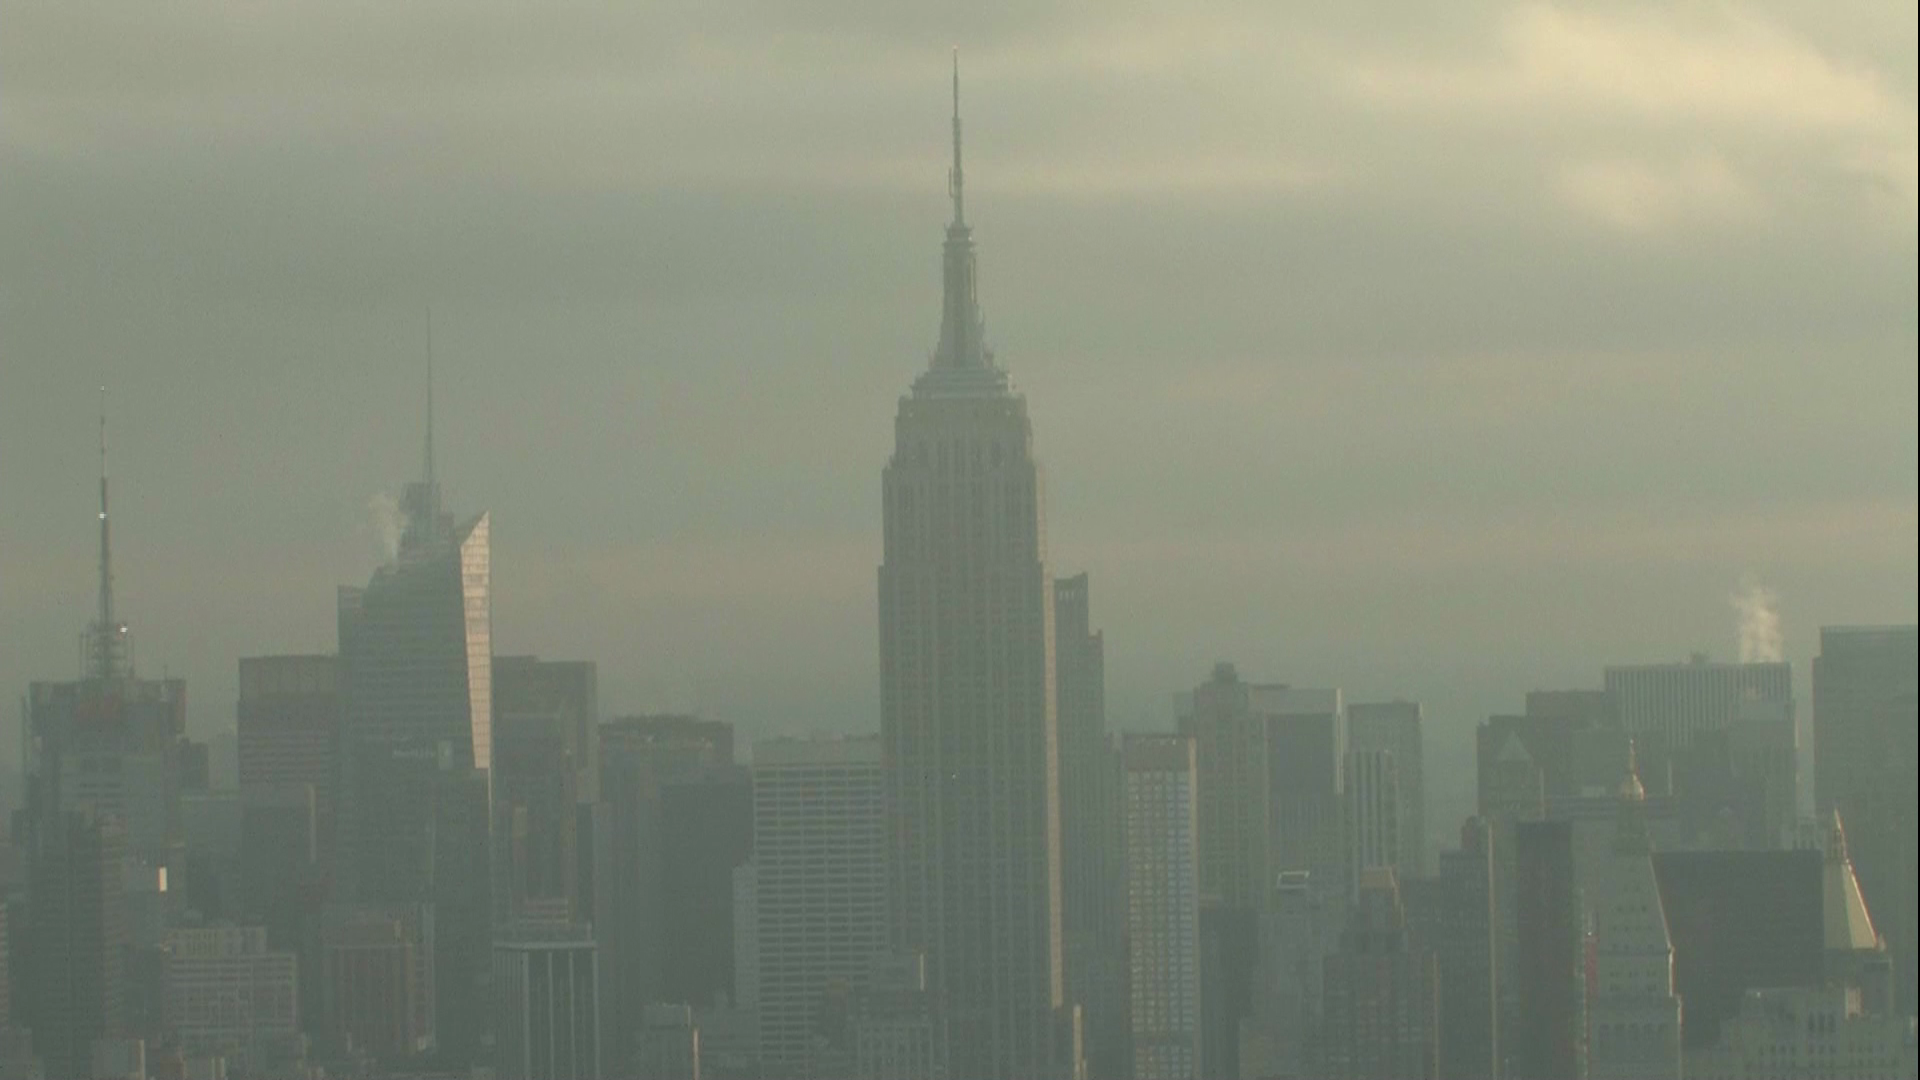 Twitter / ChrisCuomo: A hazy #NewDay begins in #NYC ...